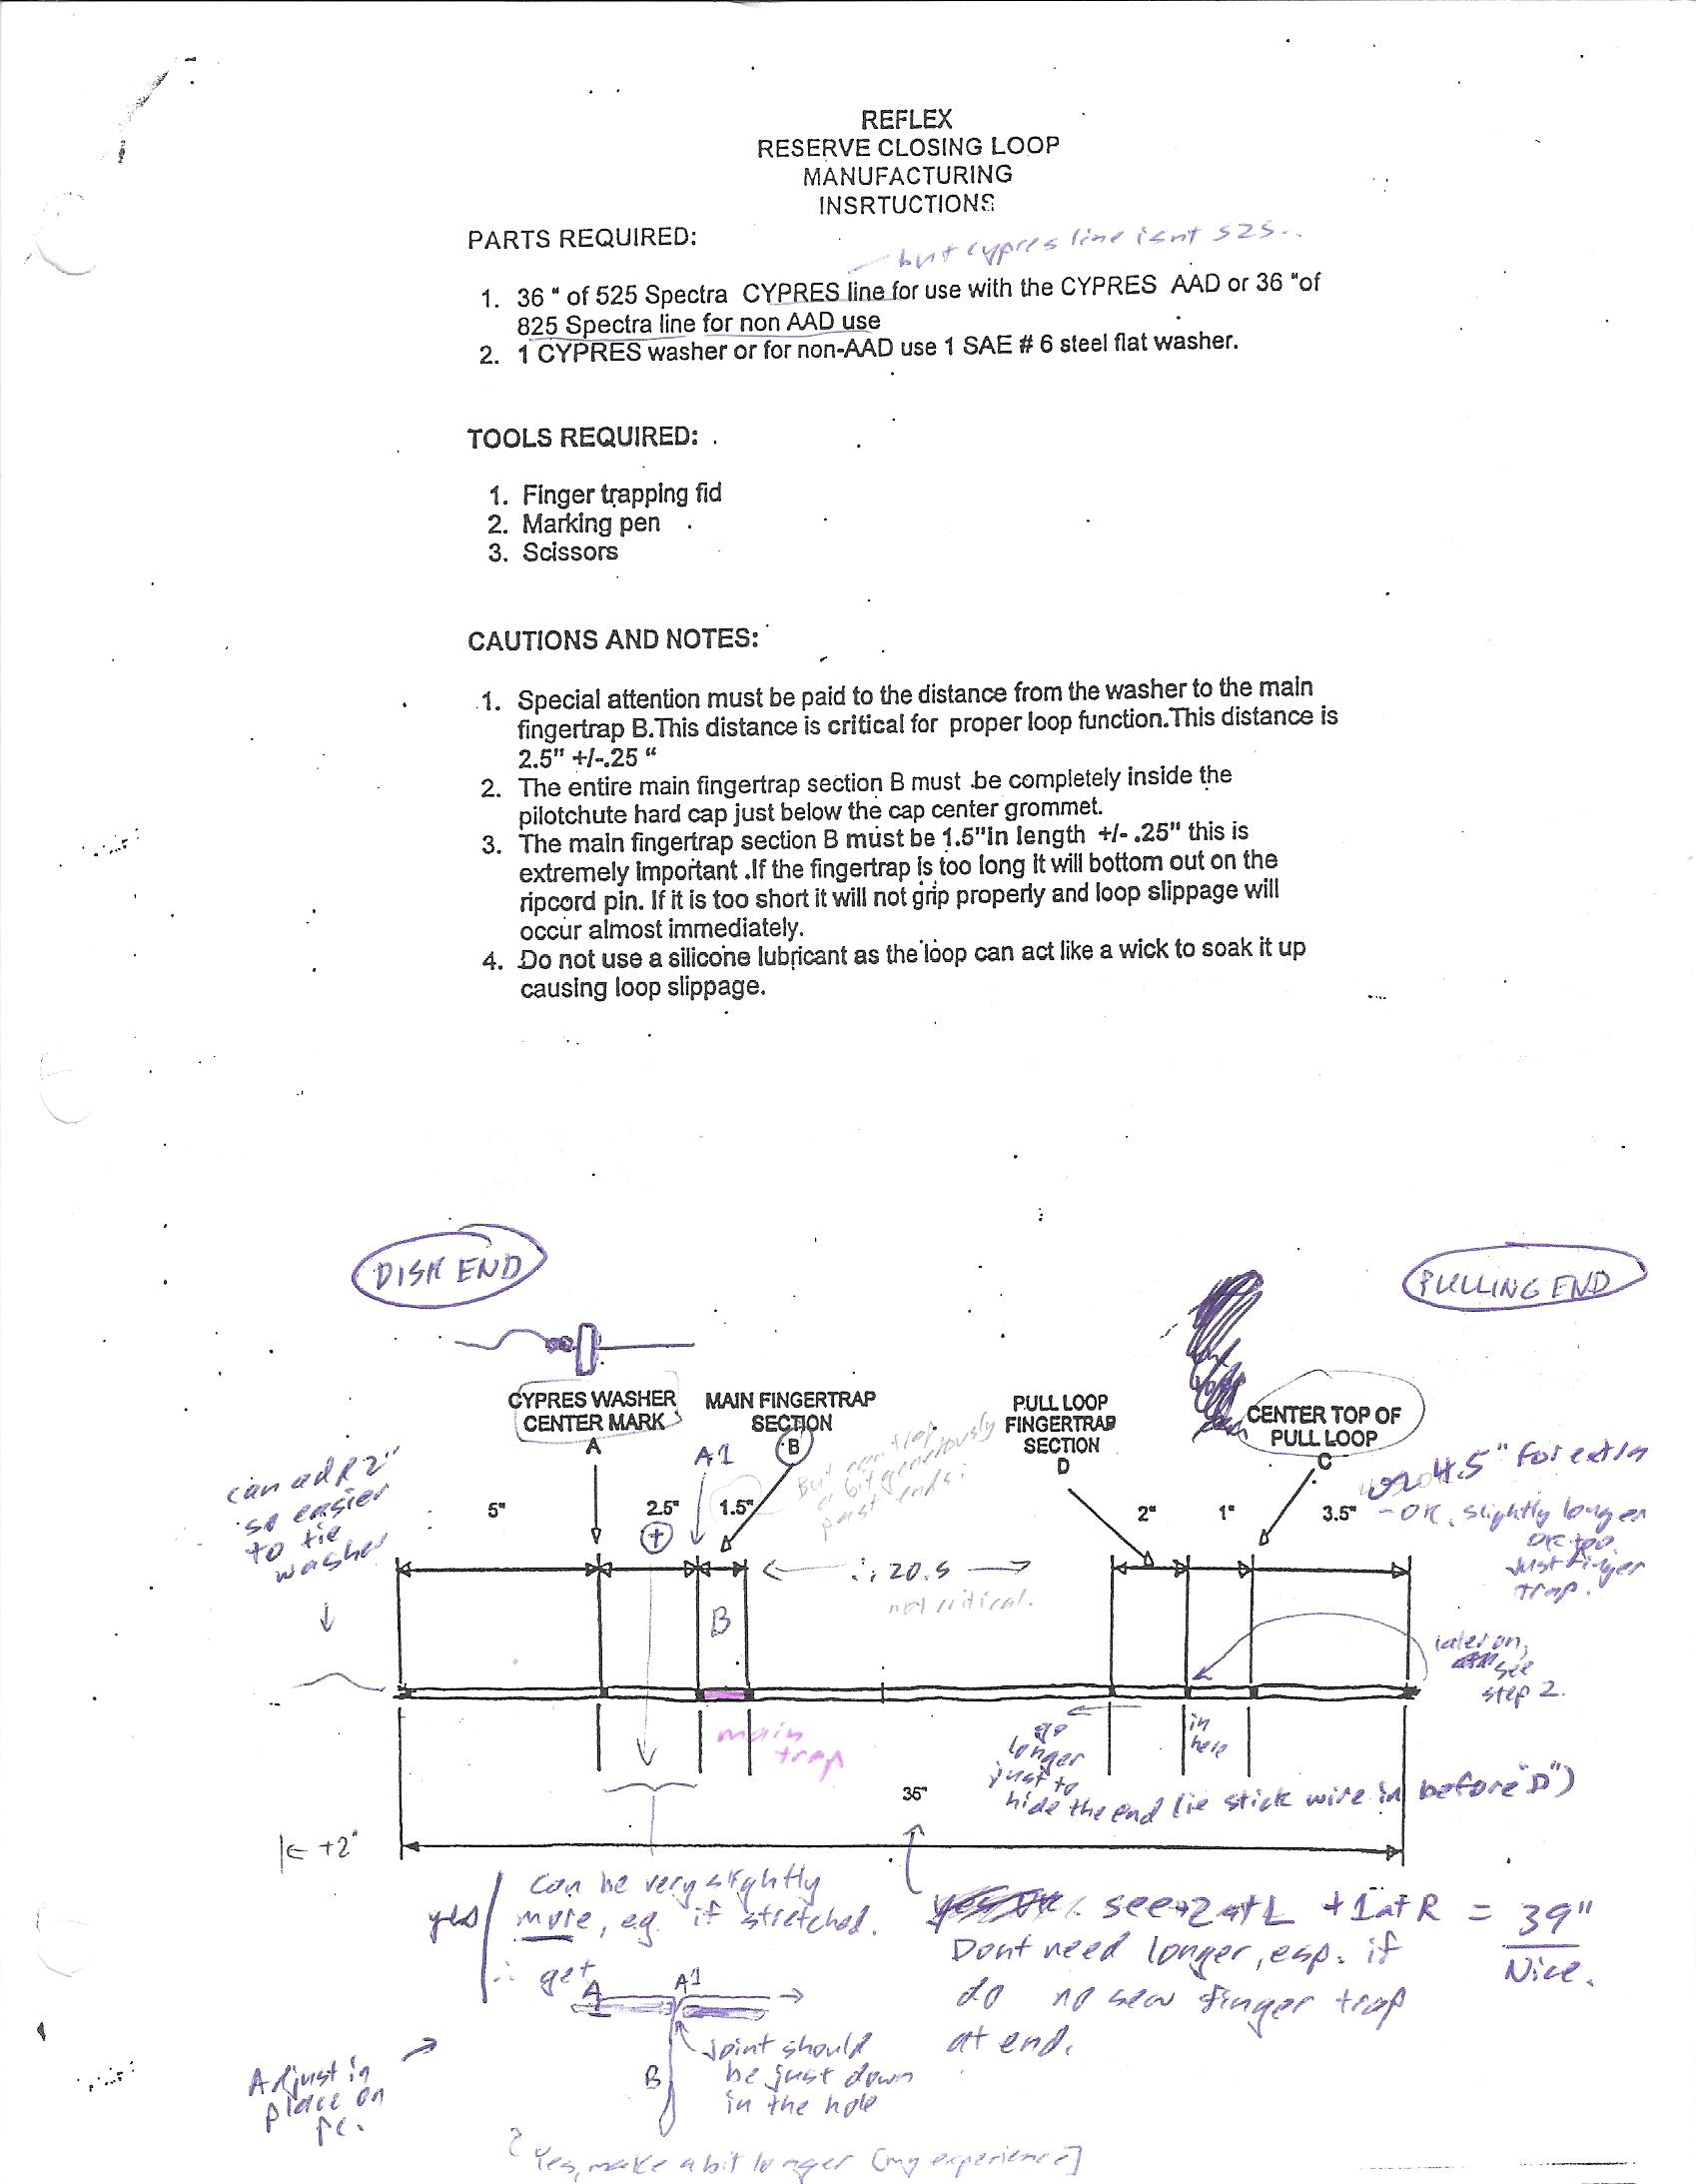 Reflex closing loop - PChapman annotated sheet scanned 1 v2.jpg